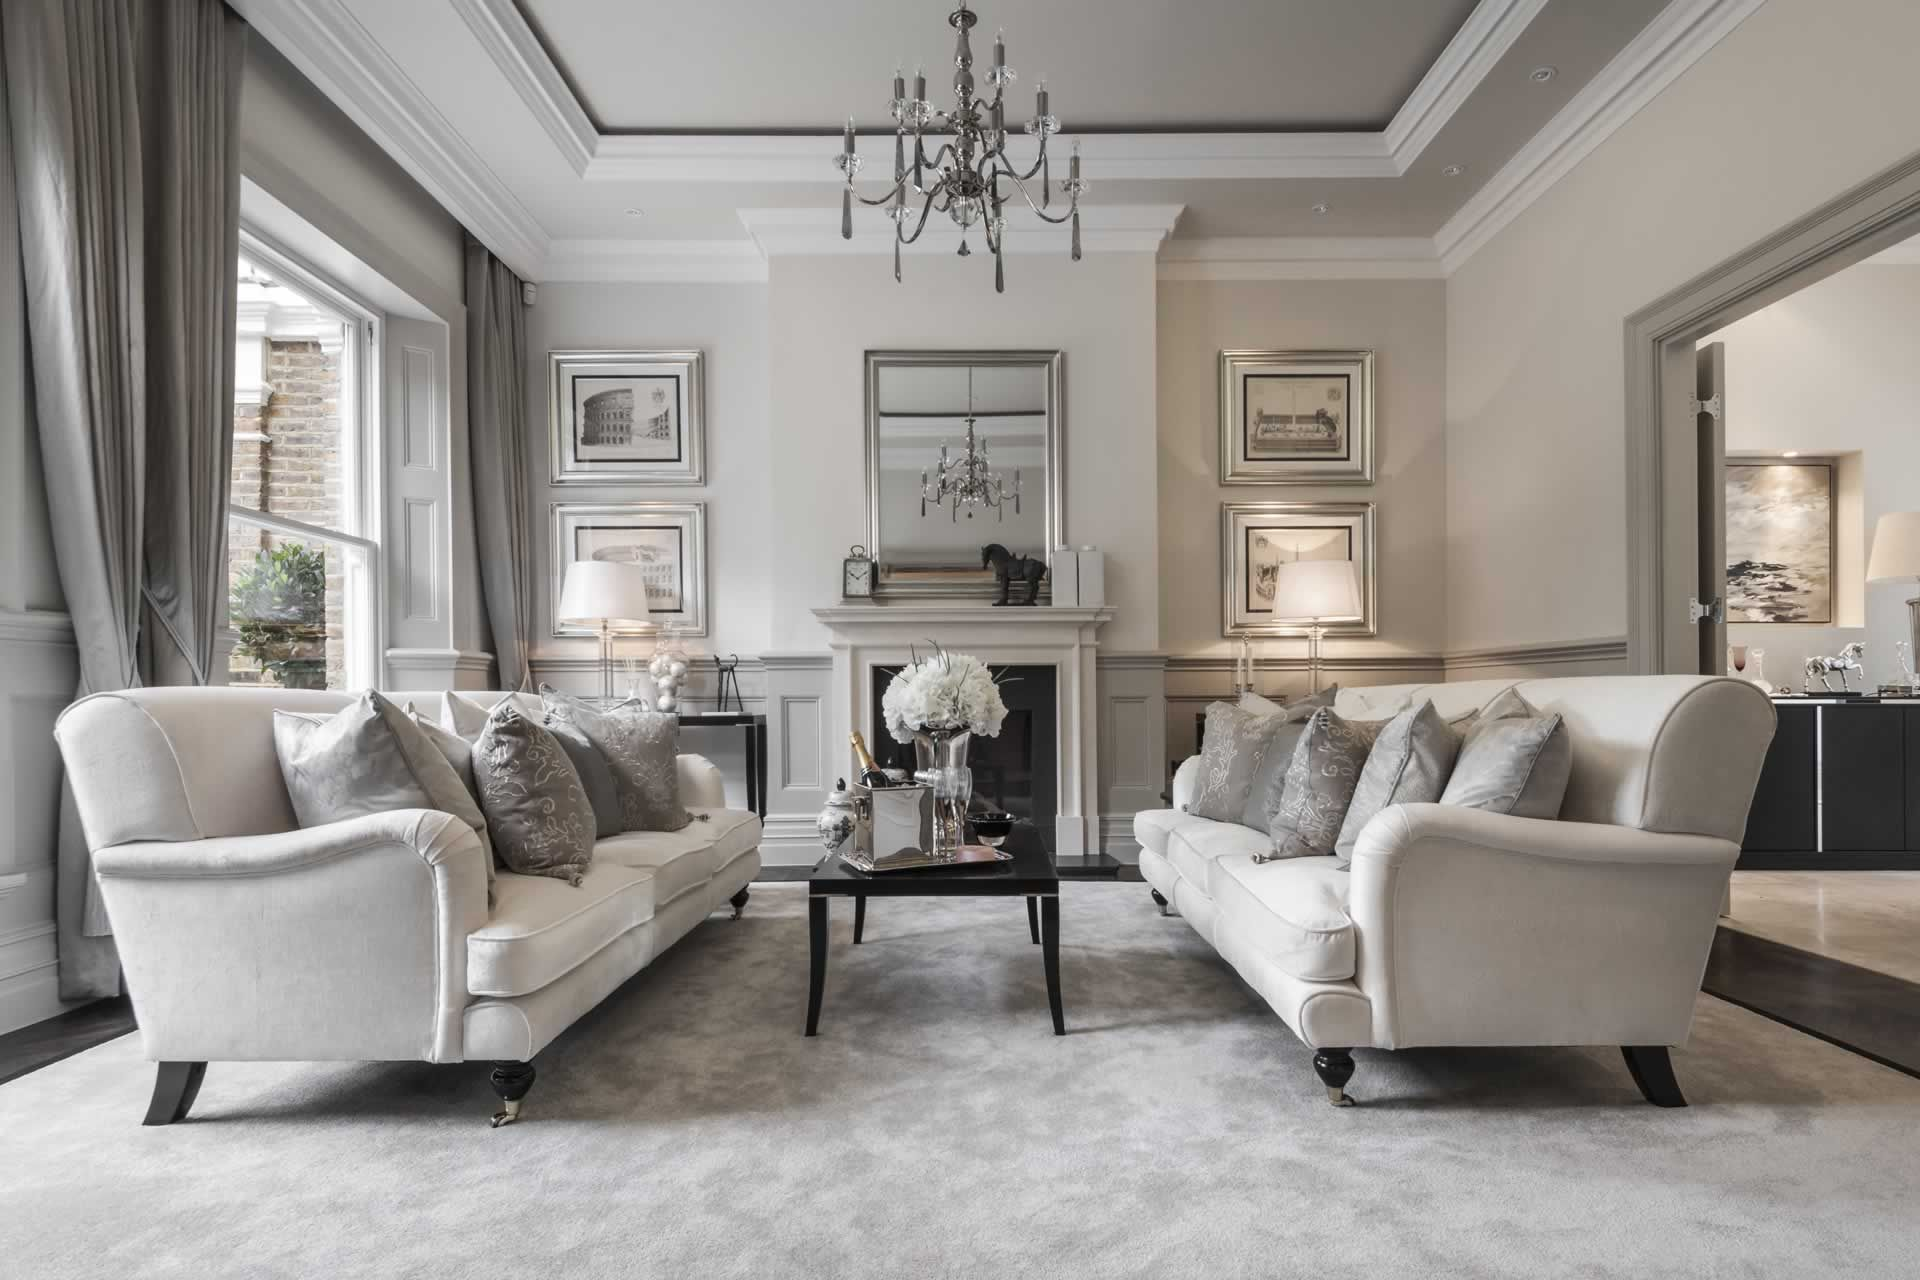 Alexander James Interiors Carry Out A Full Range Of Interior Design Services